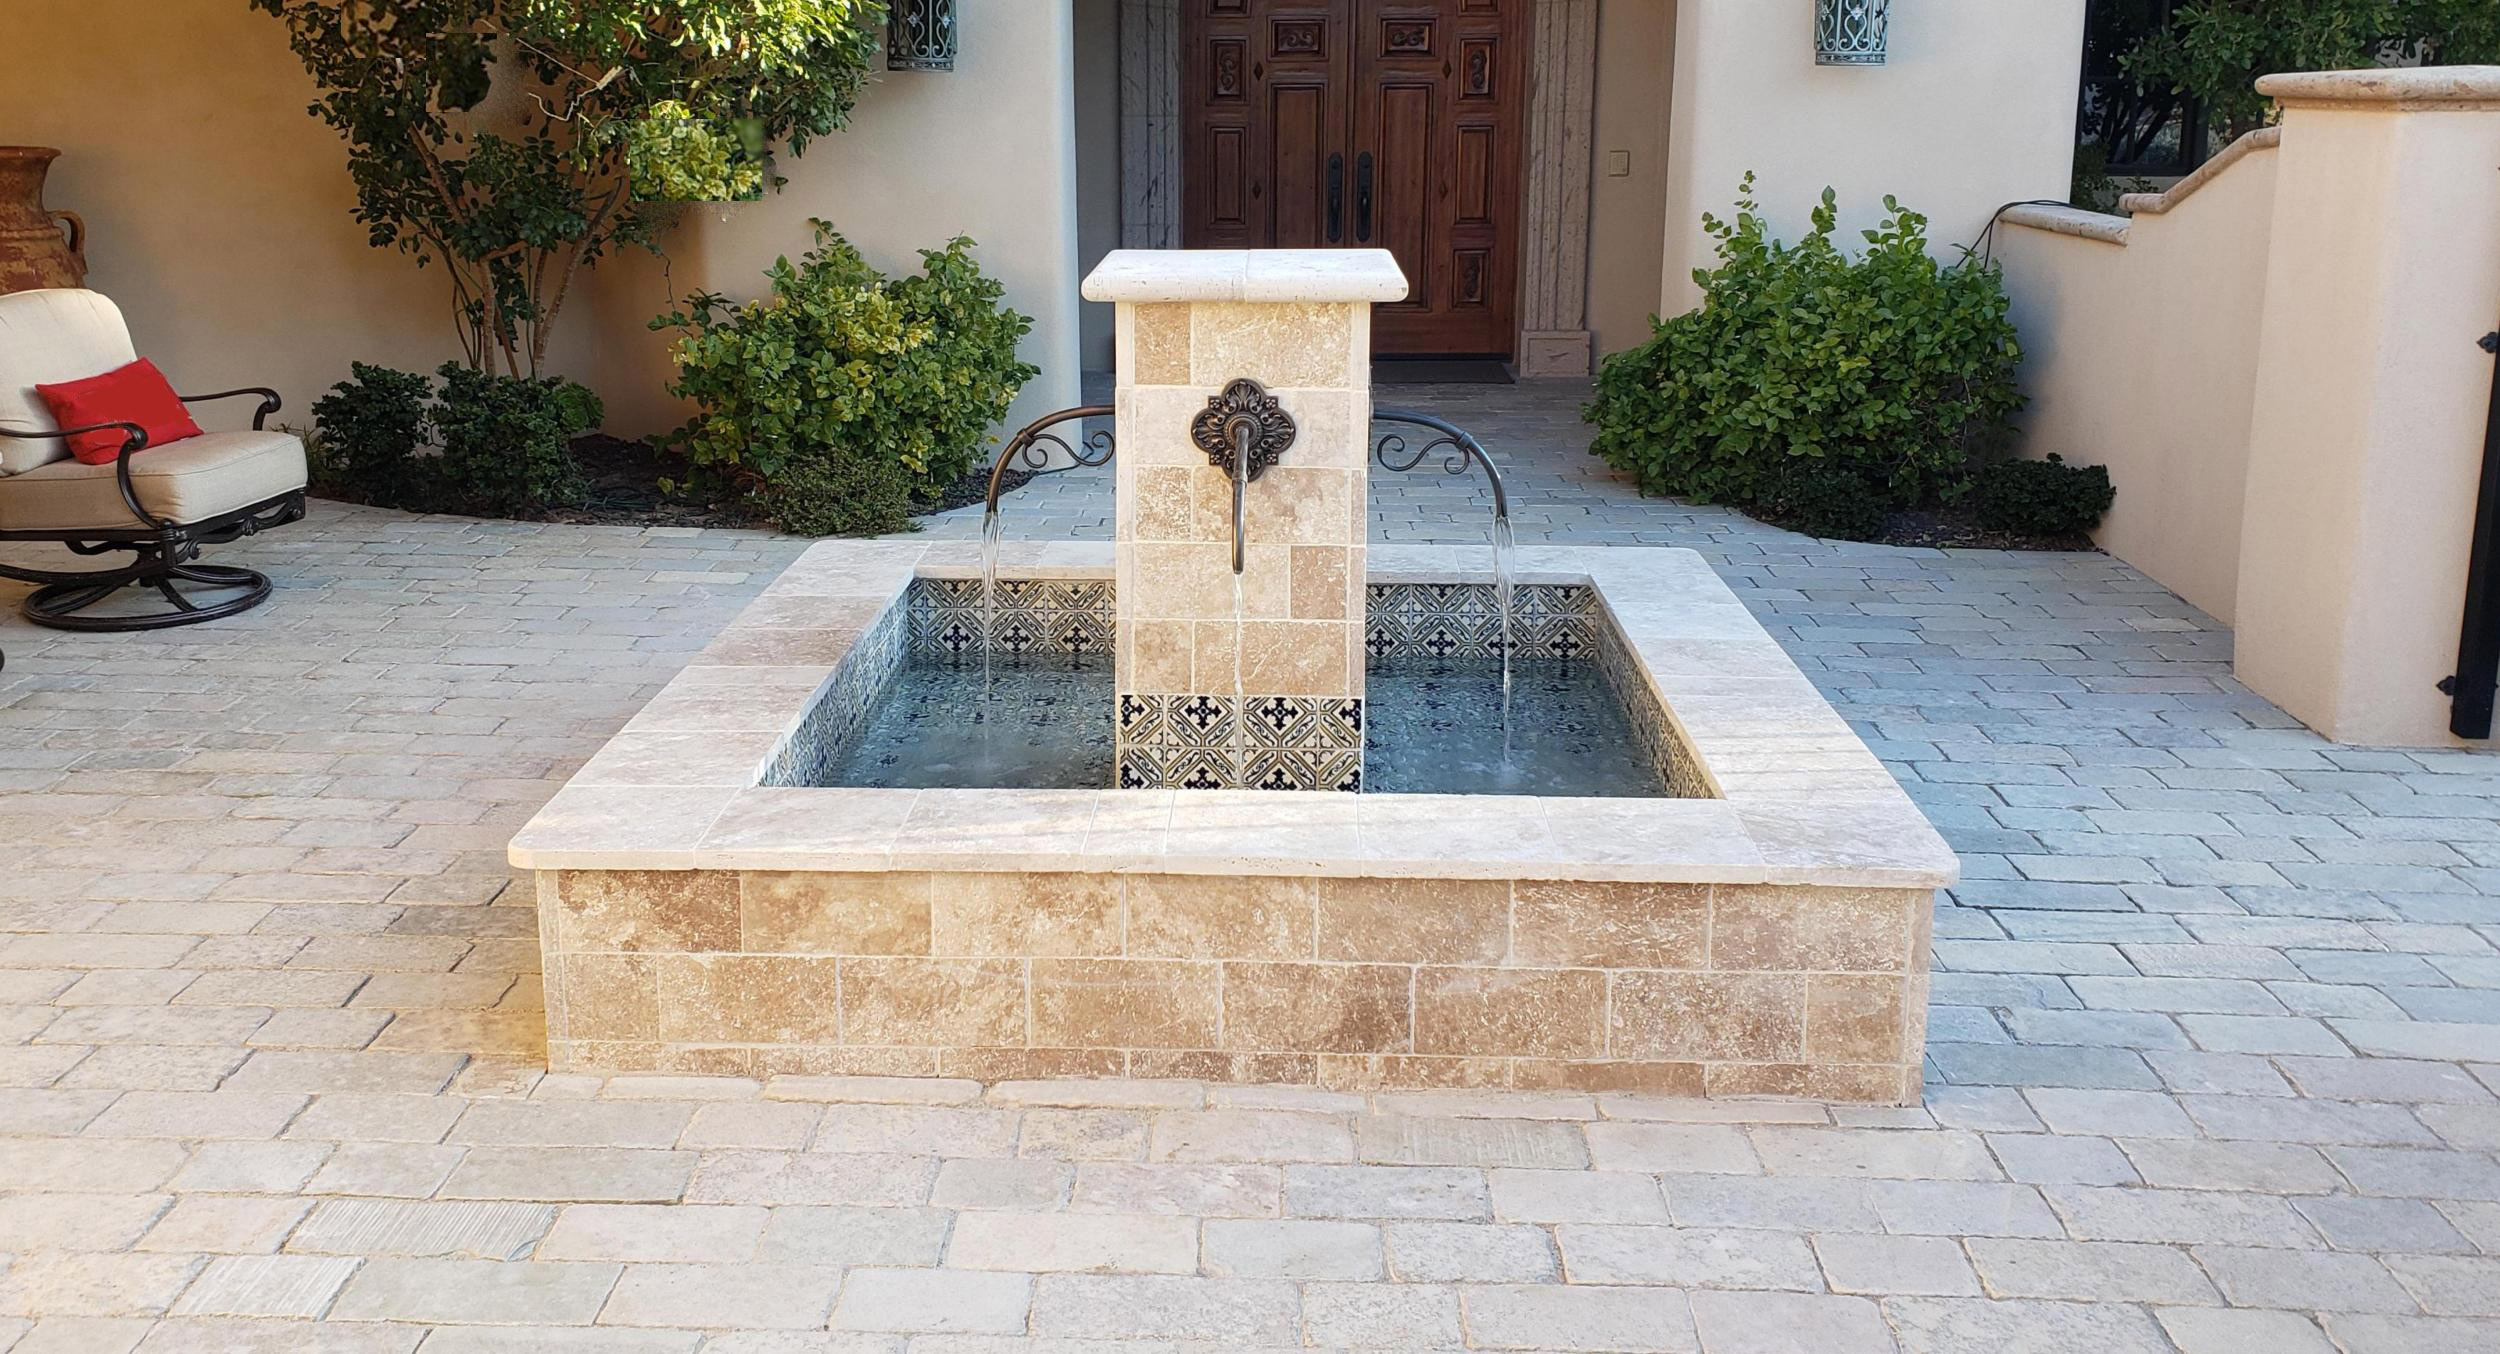 Why Add a Water Feature to Your Outdoor Living Area